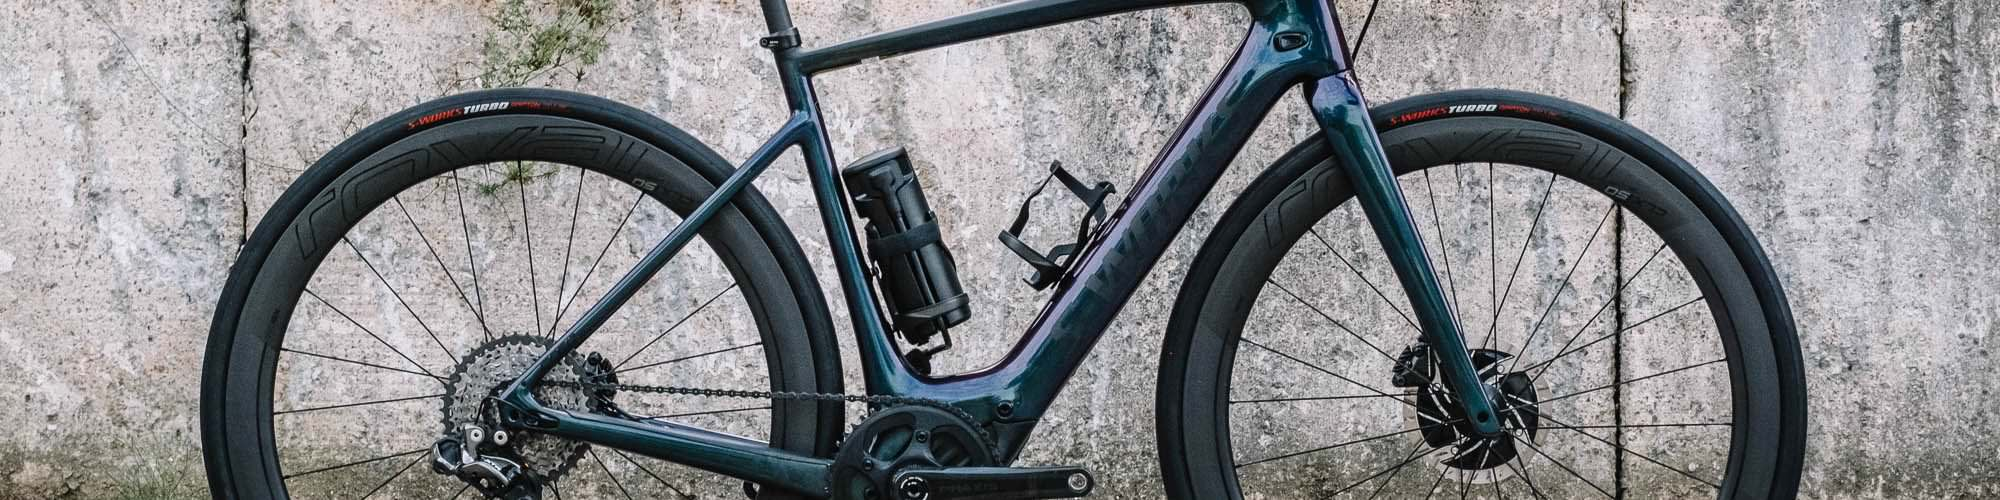 First Test: Specialized S-Works Turbo Creo SL – The First